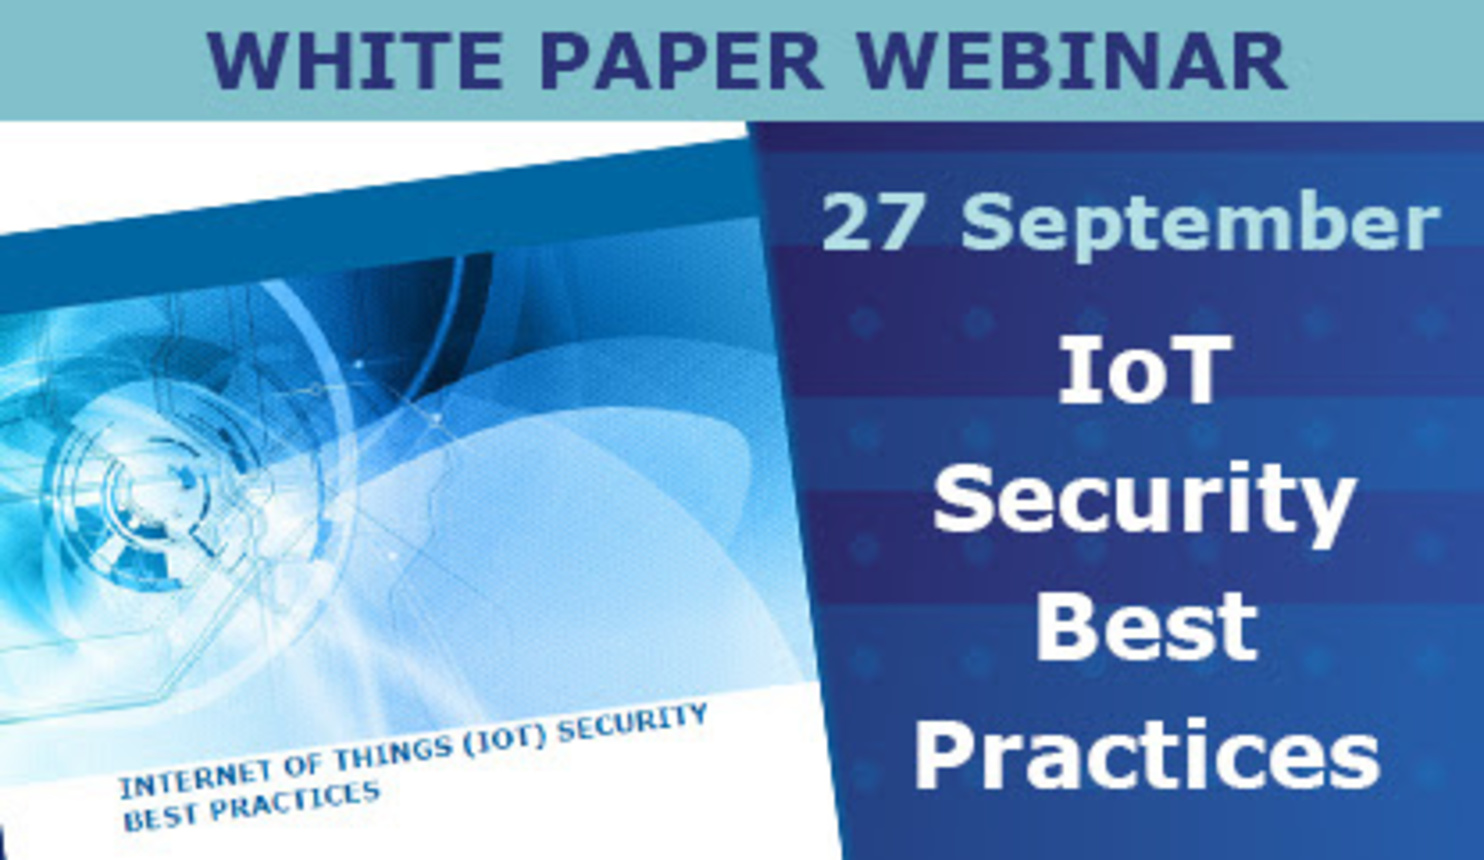 IoT Security Best Practices - Webinar by George Corser and Jared Bielby